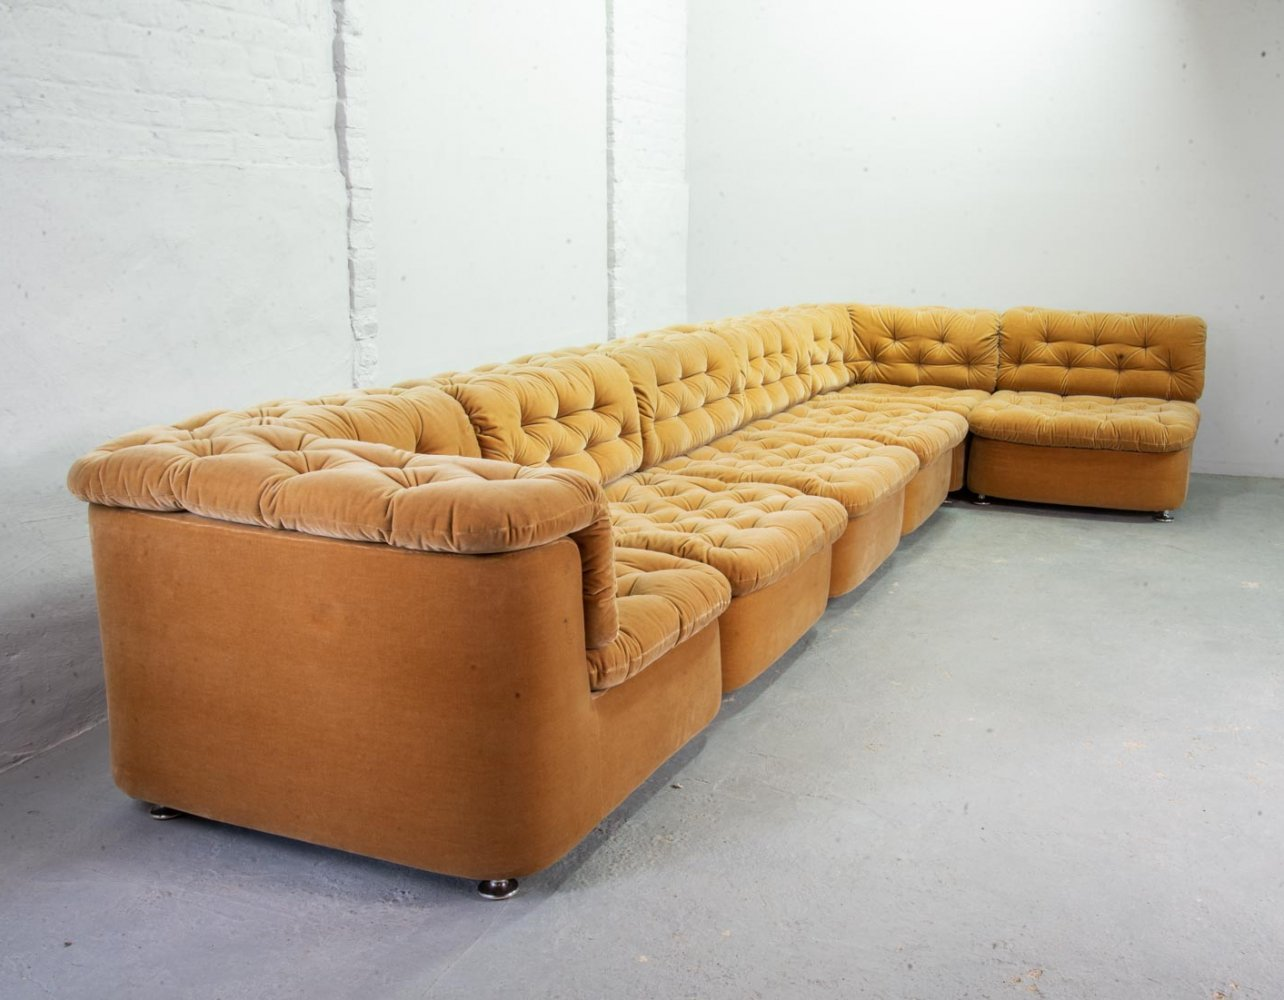 Modular Lounge Sofa in Peach Velvet with 6 elements by Dreipunkt, Germany 1970s